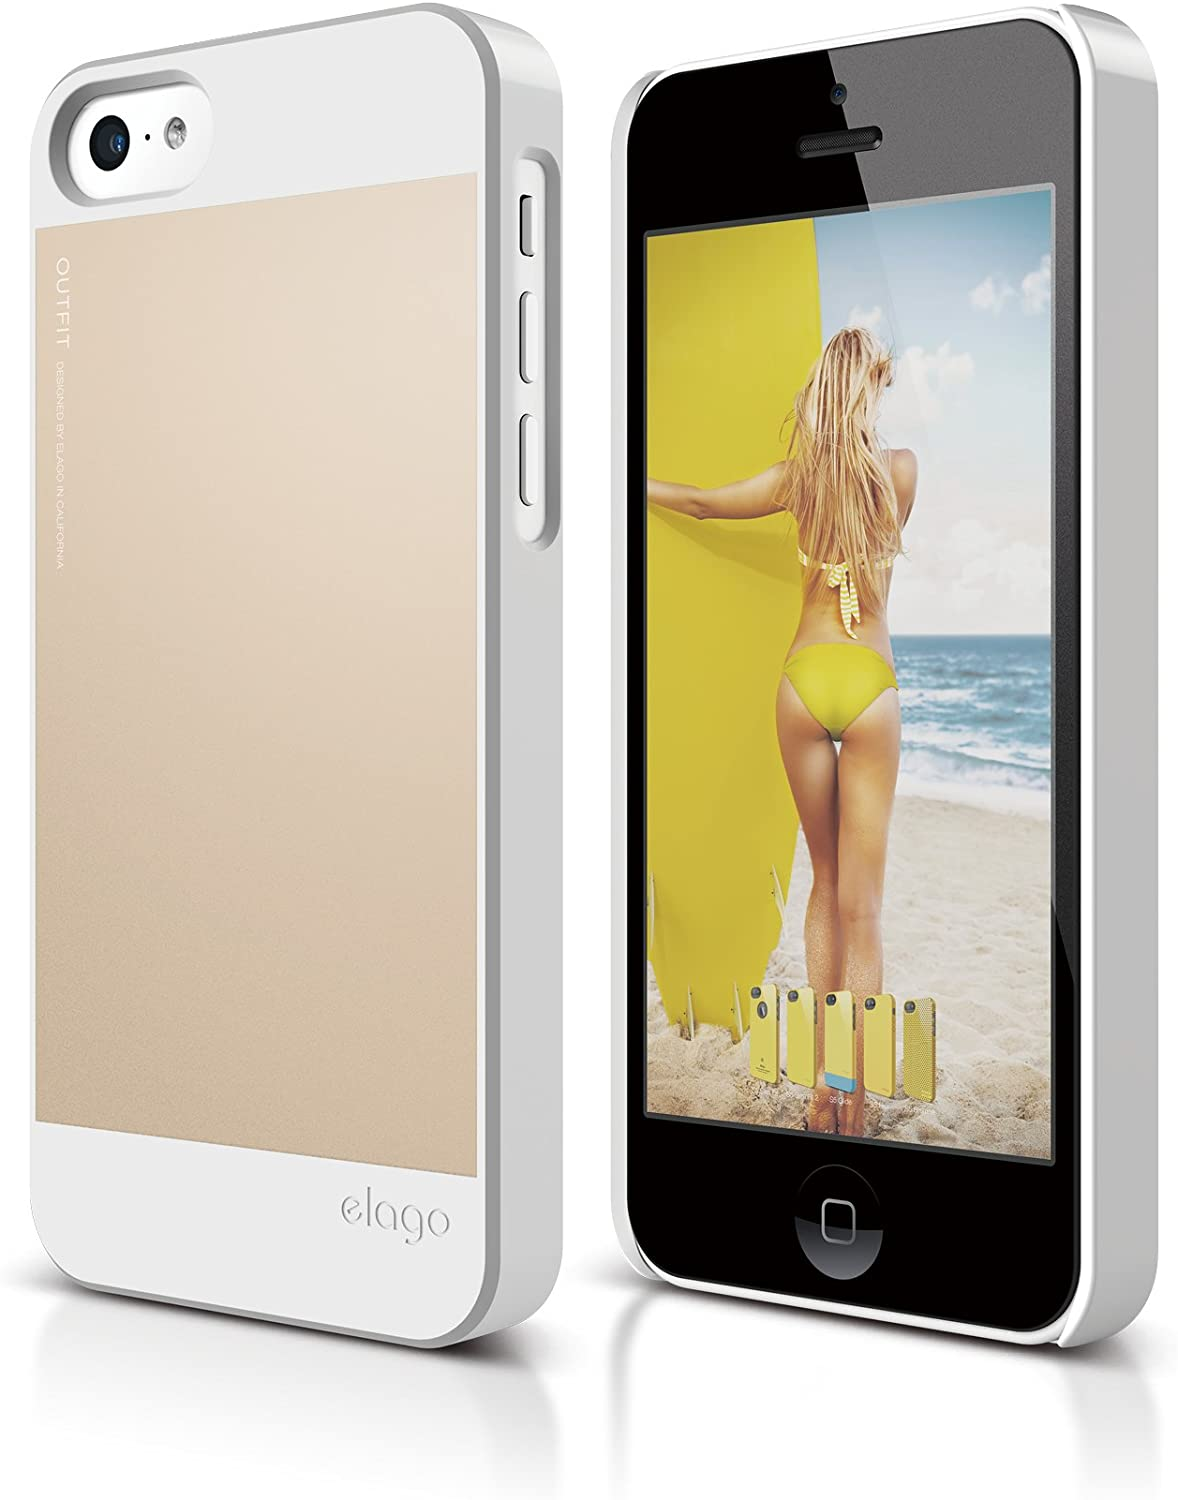 elago S5C Outfit Morph Aluminum and Polycarbonate Dual Case for The iPhone 5C - eco Friendly Retail Packaging (White/Gold)